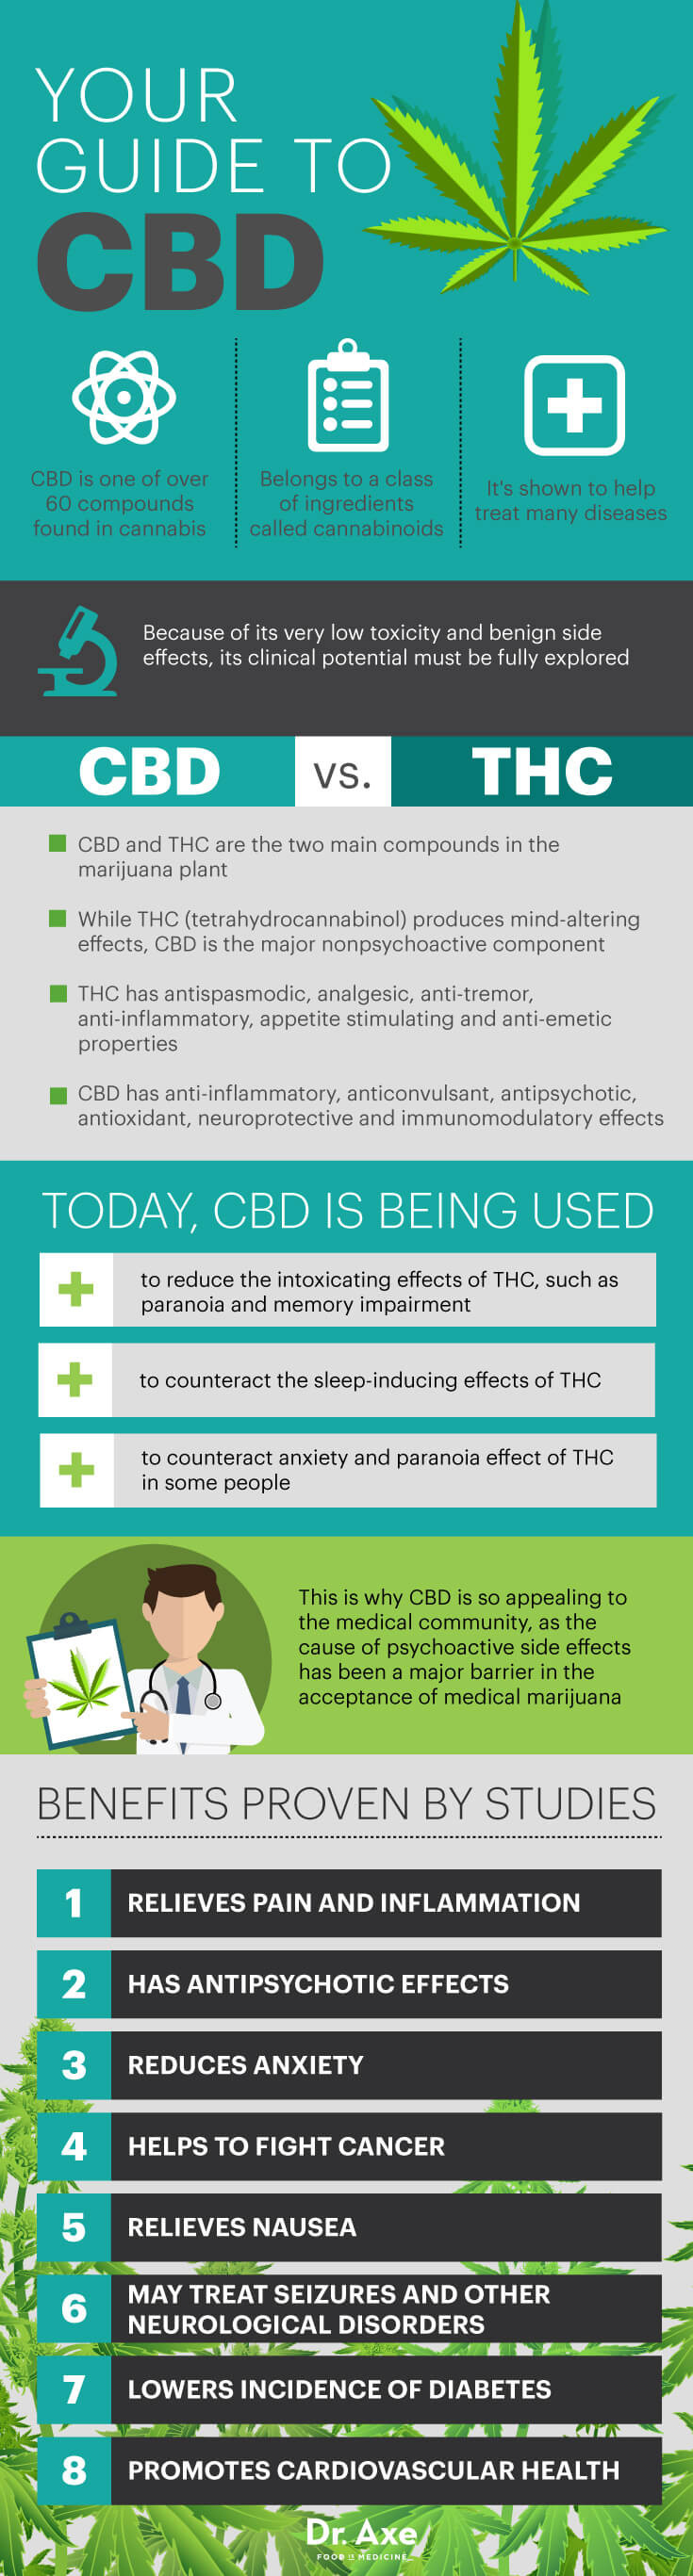 CBD guide, cannabis oils